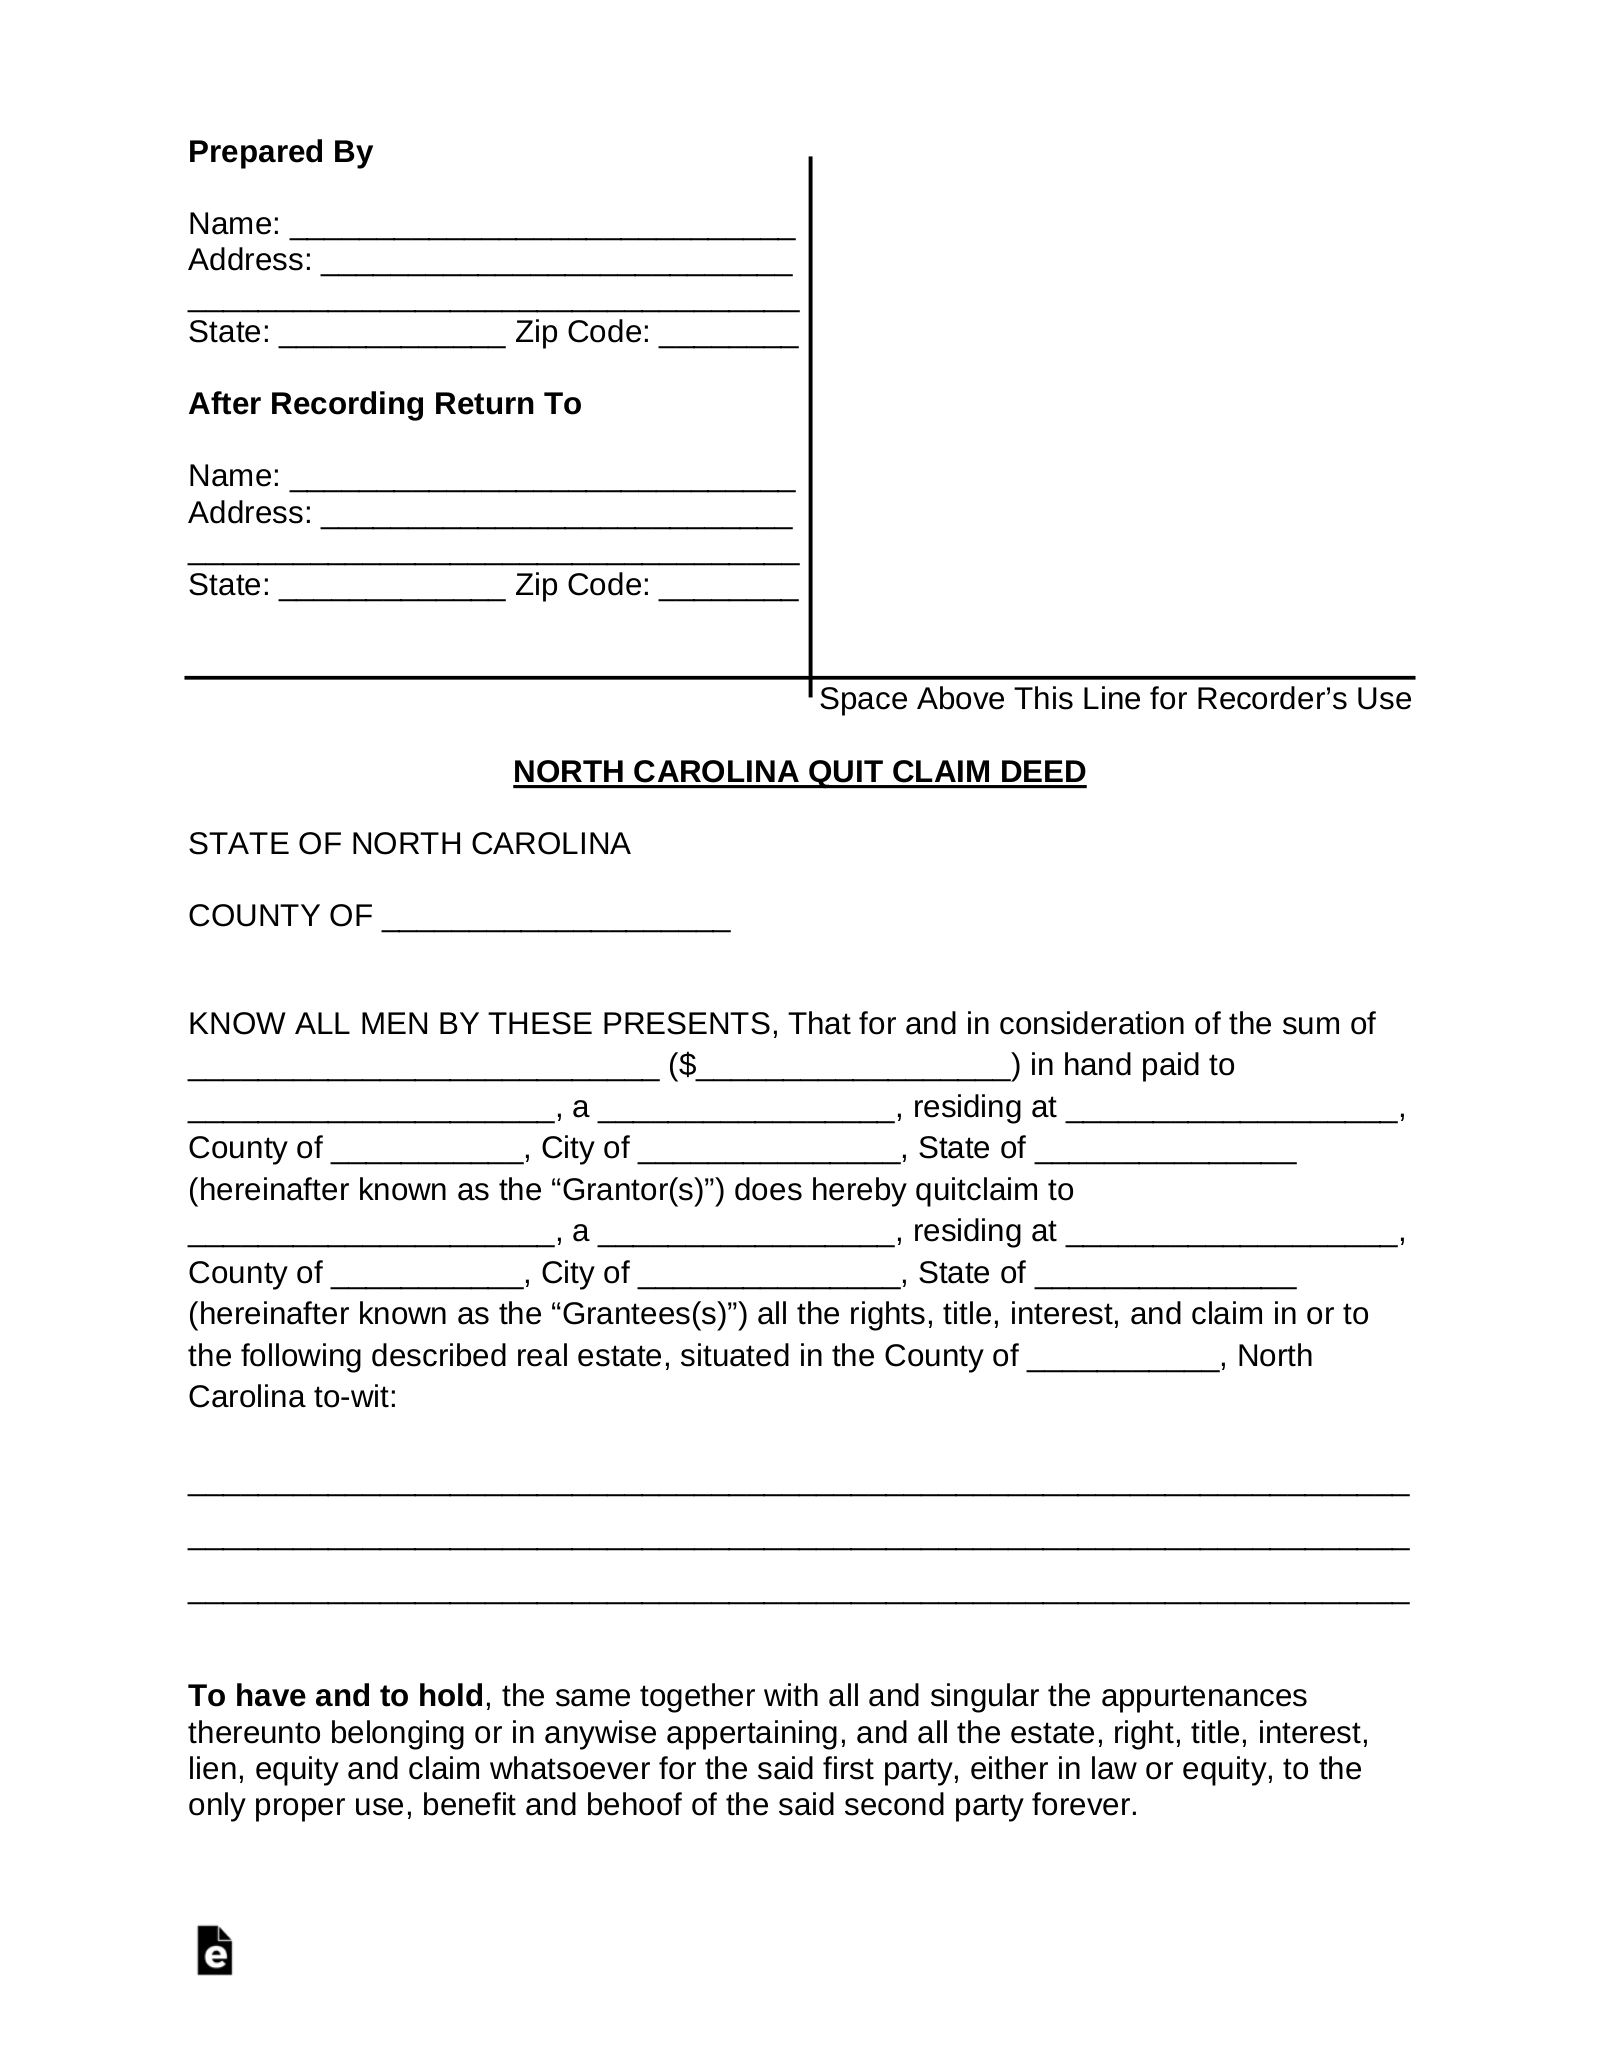 Preparing Your Forms